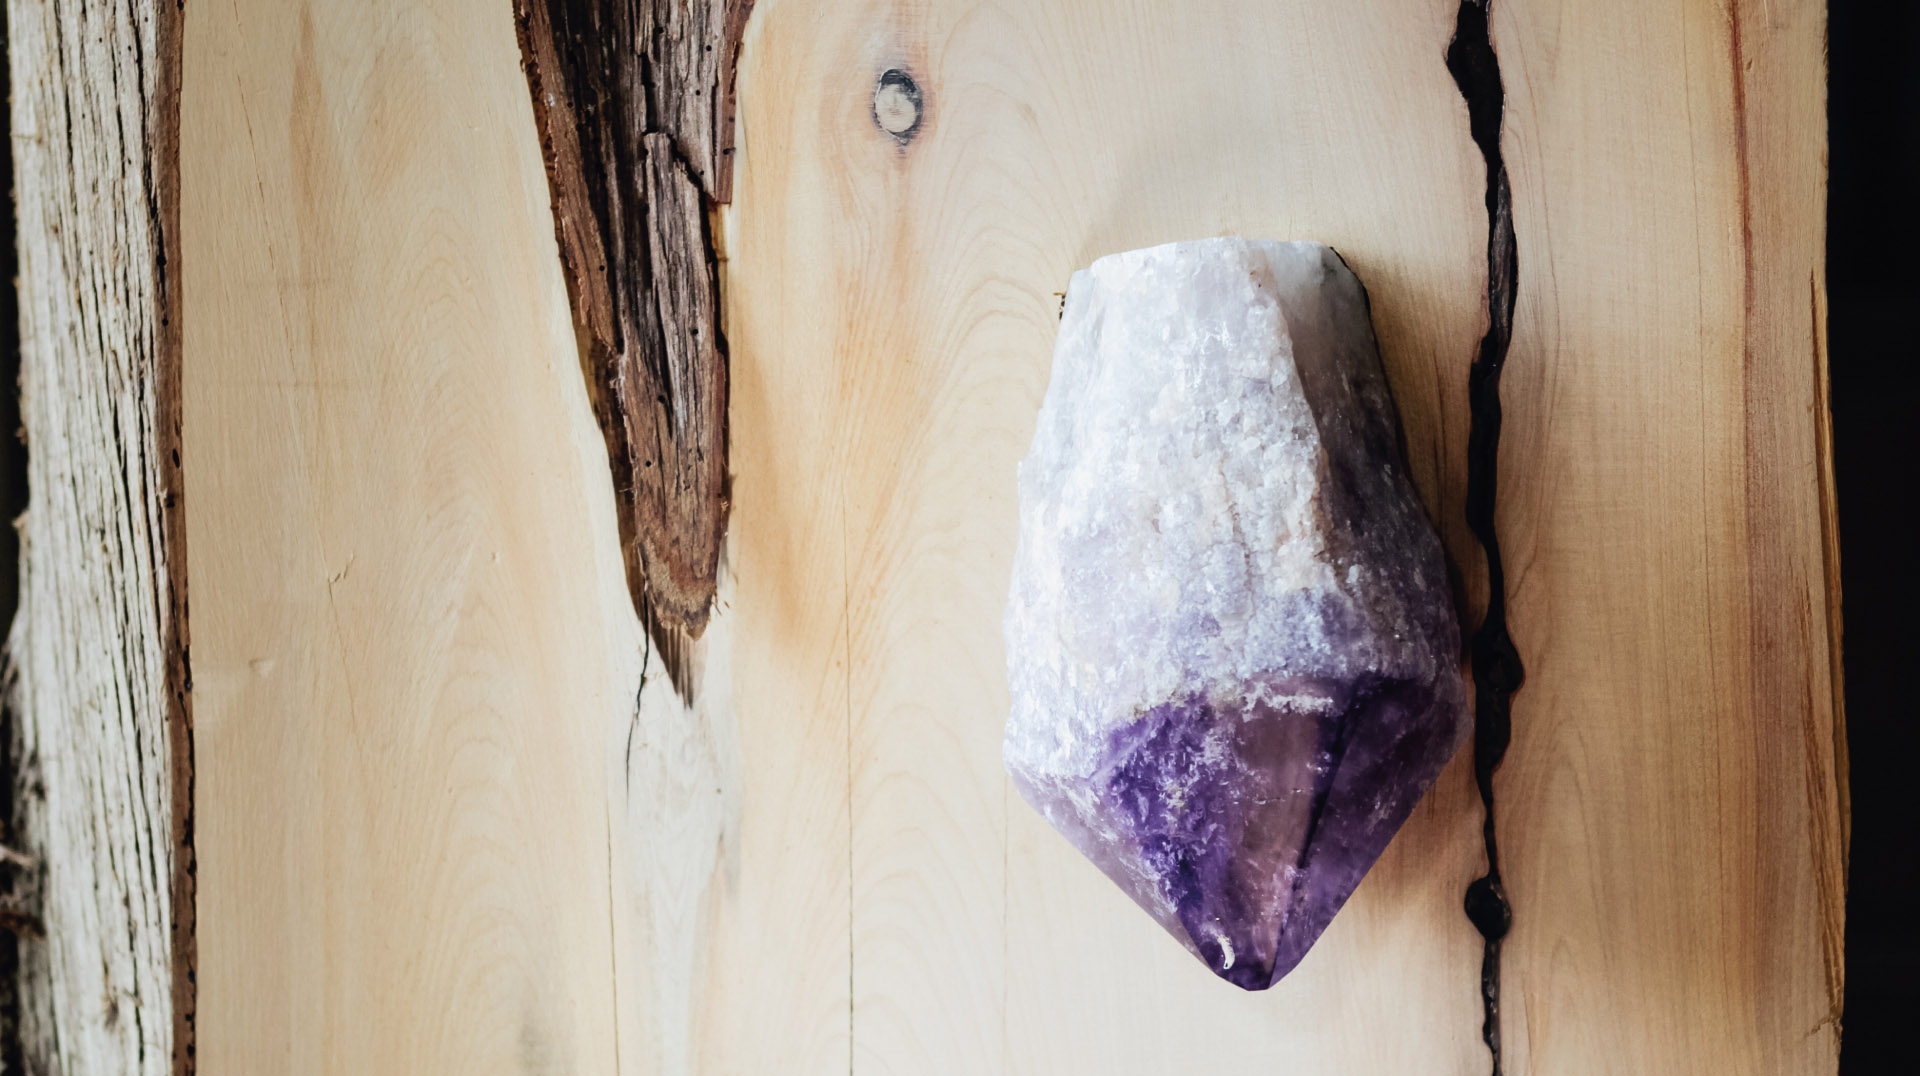 03-THERAW-THECOOKED-AARON-NACHTAILER-ART-ARTIST-CRYSTALS-SCULPTURES